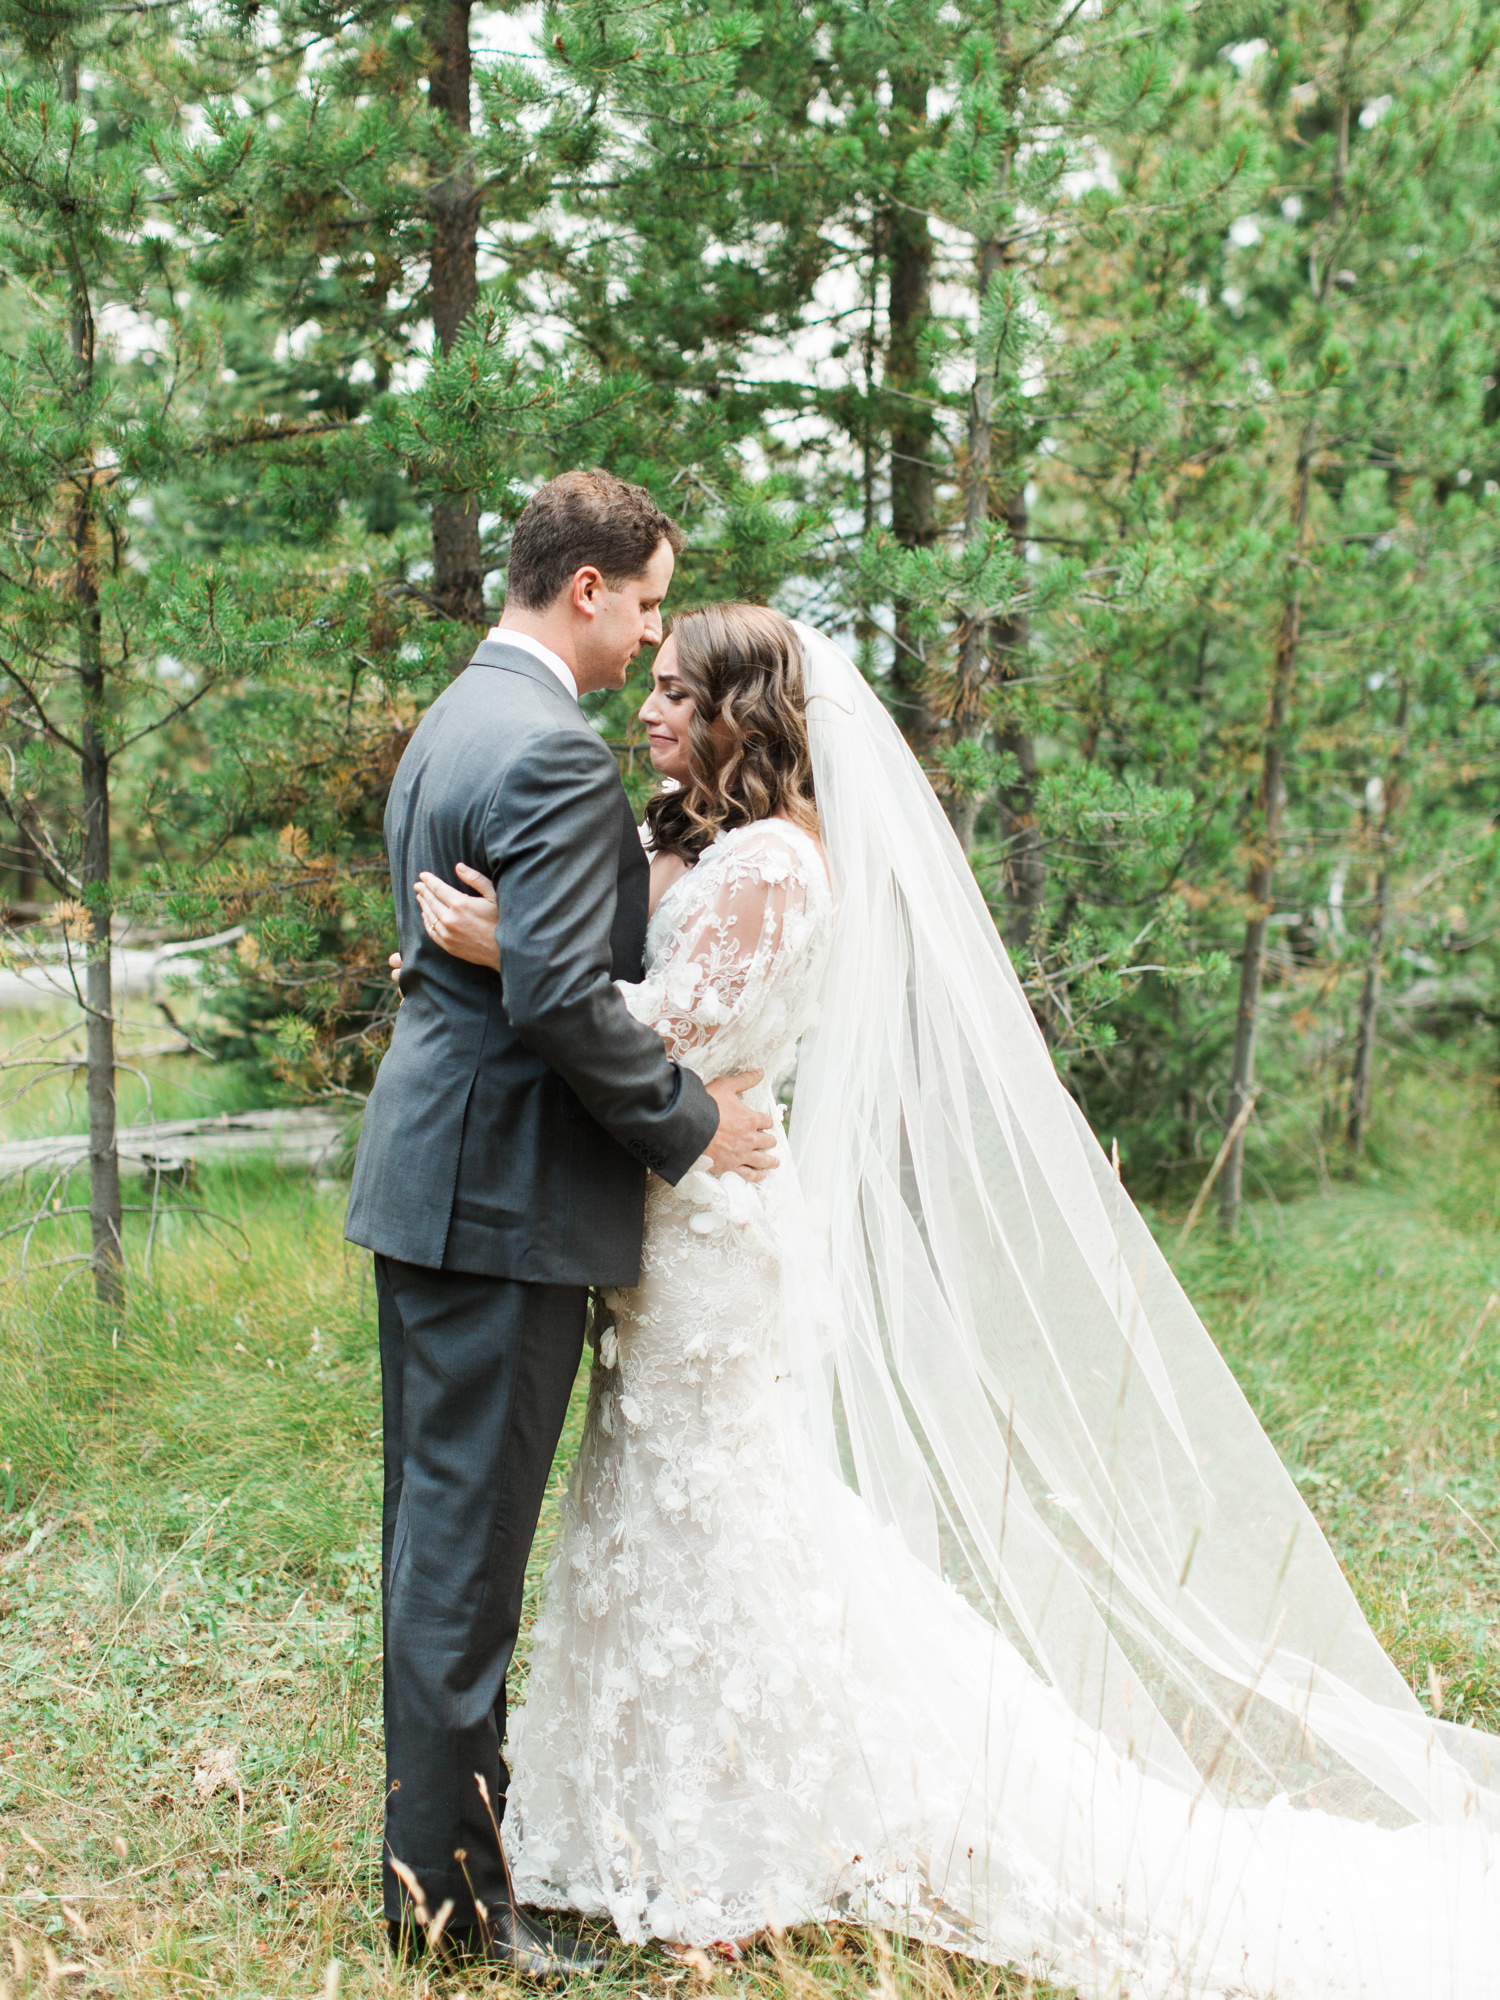 bride and groom hold each other on mountain hillside for portrait photo